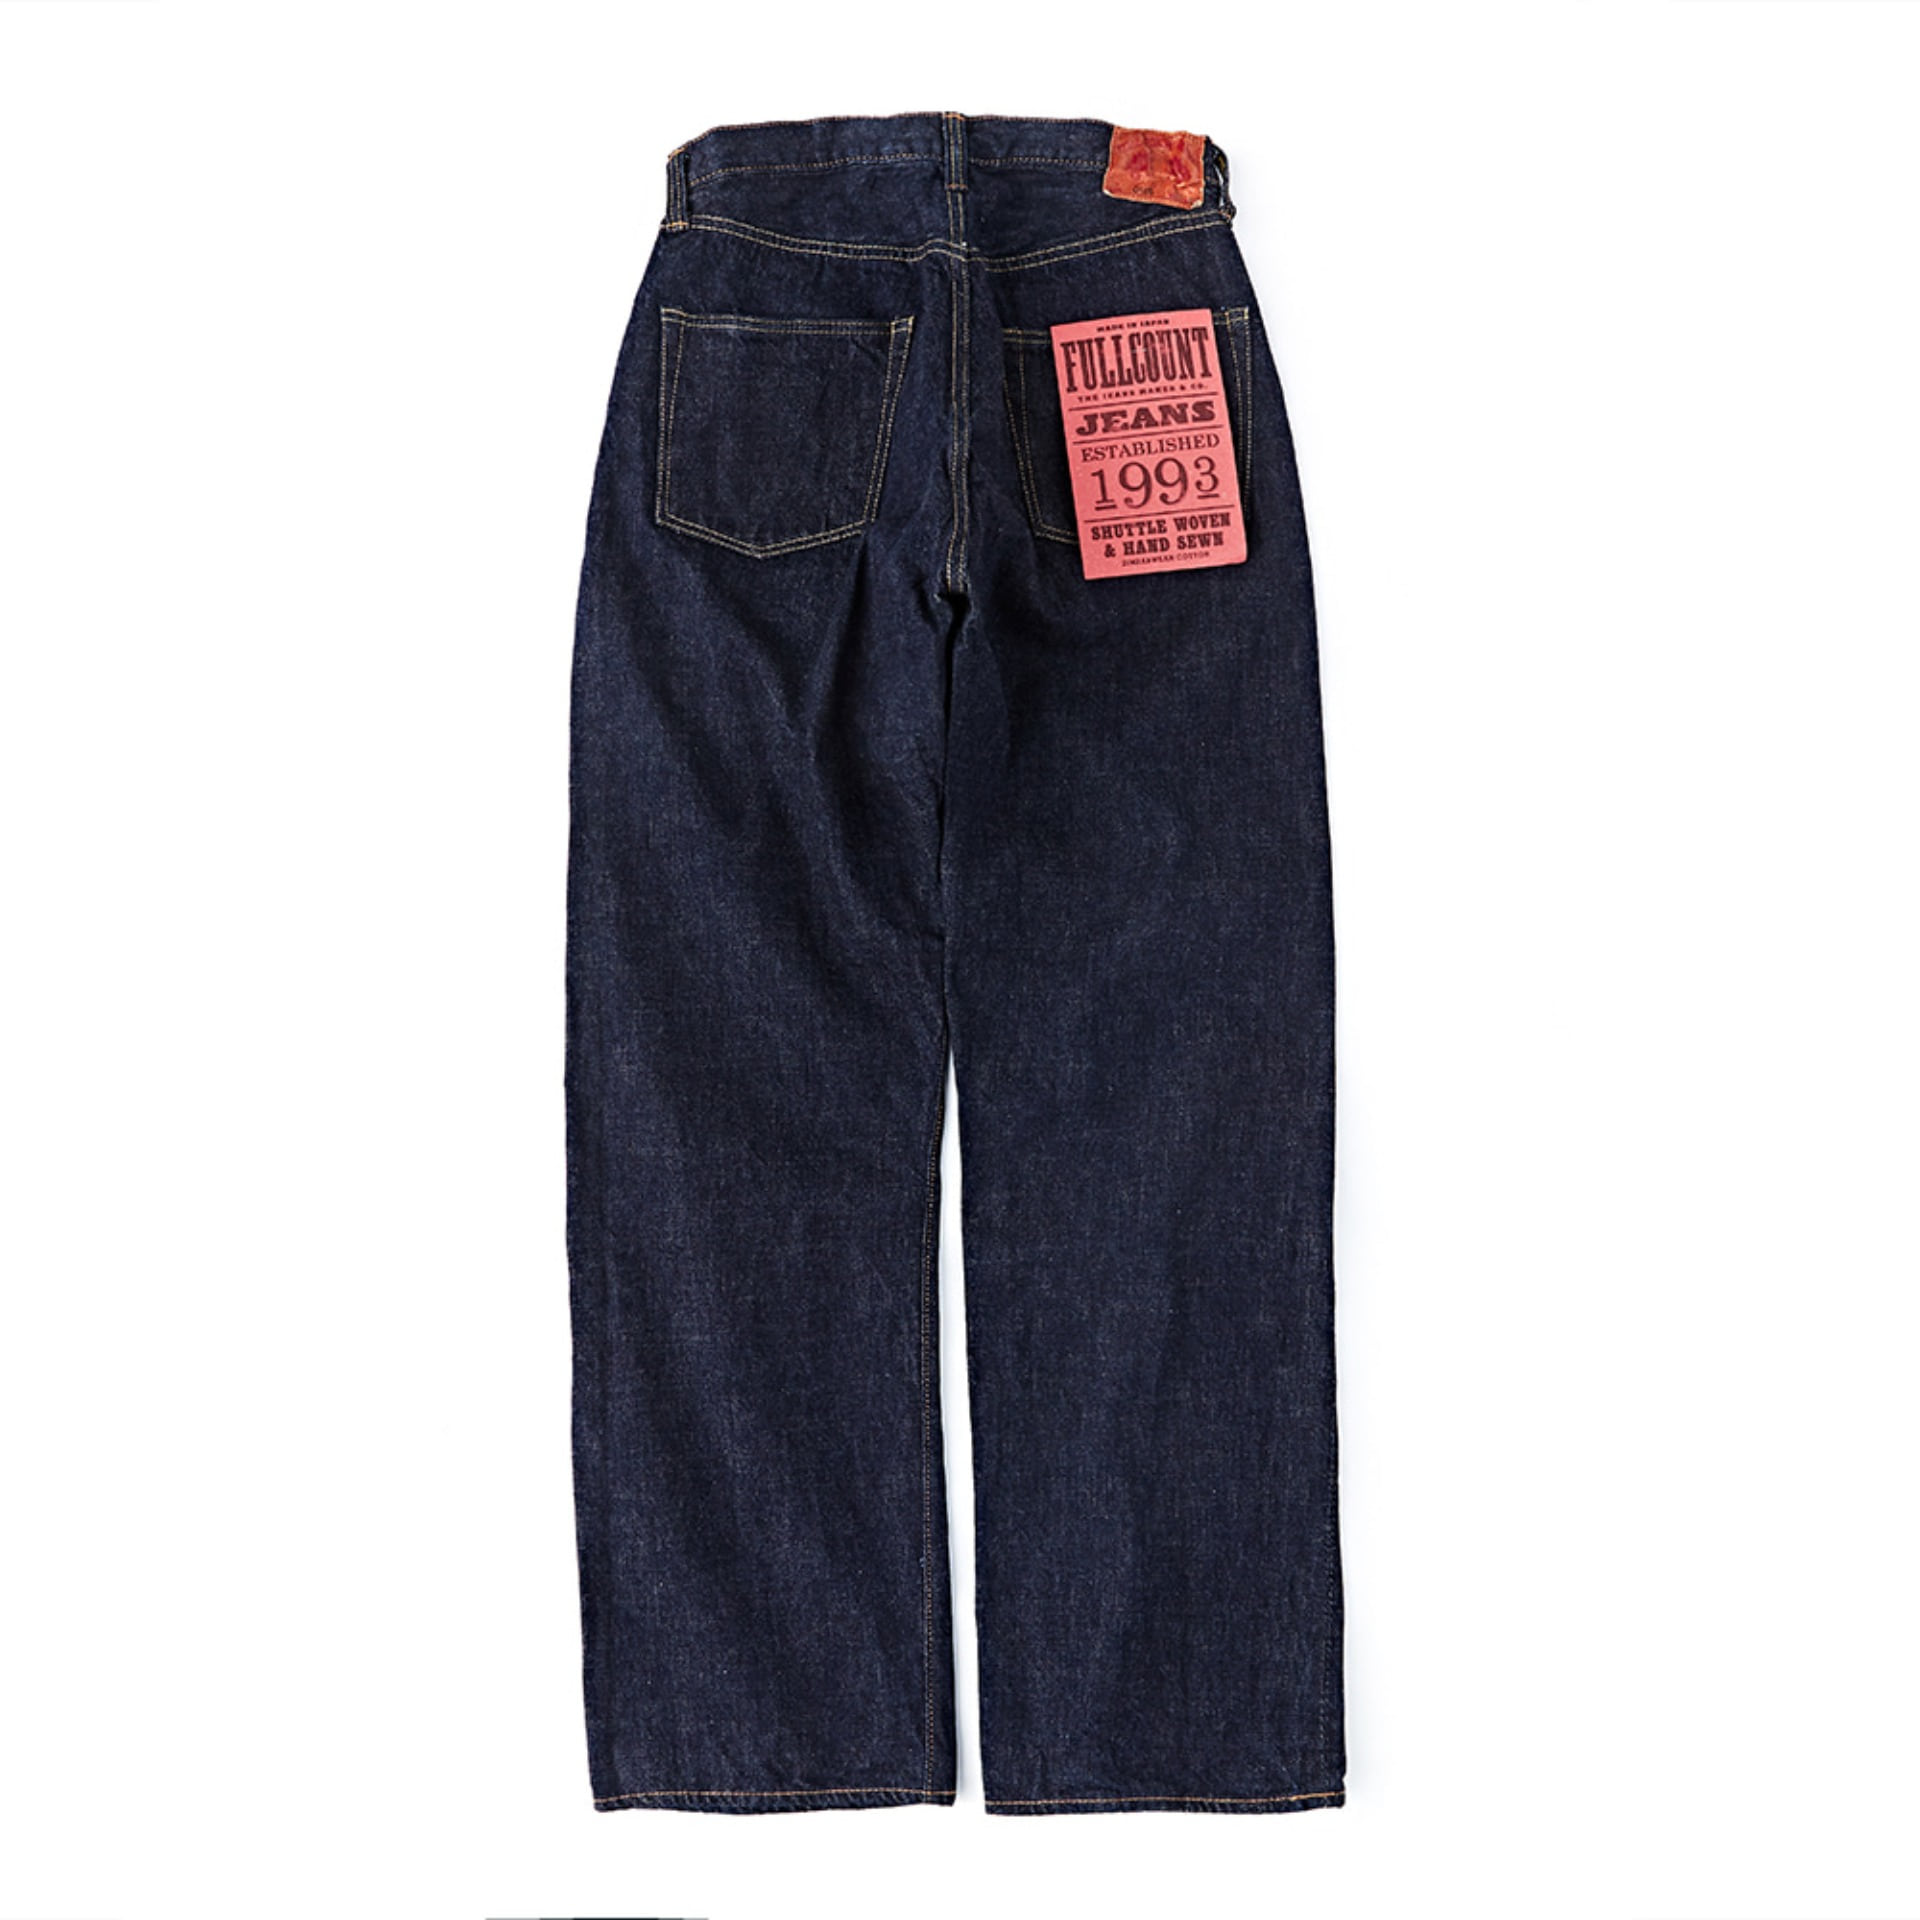 New Loose Straight Denim 0105W (One Washed)RESTOCK